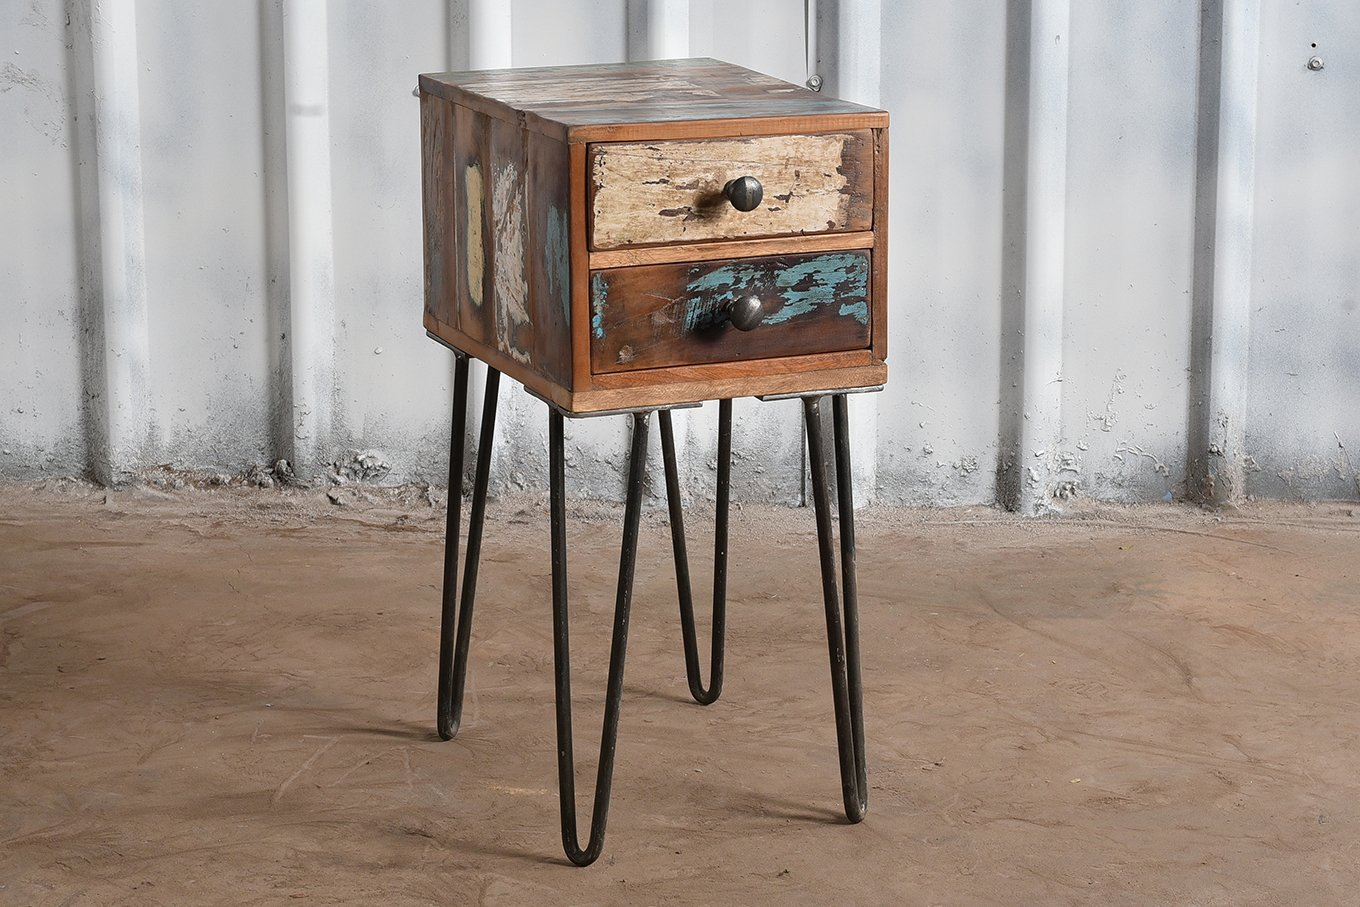 Reclaimed wooden 2-drawer console with iron legs